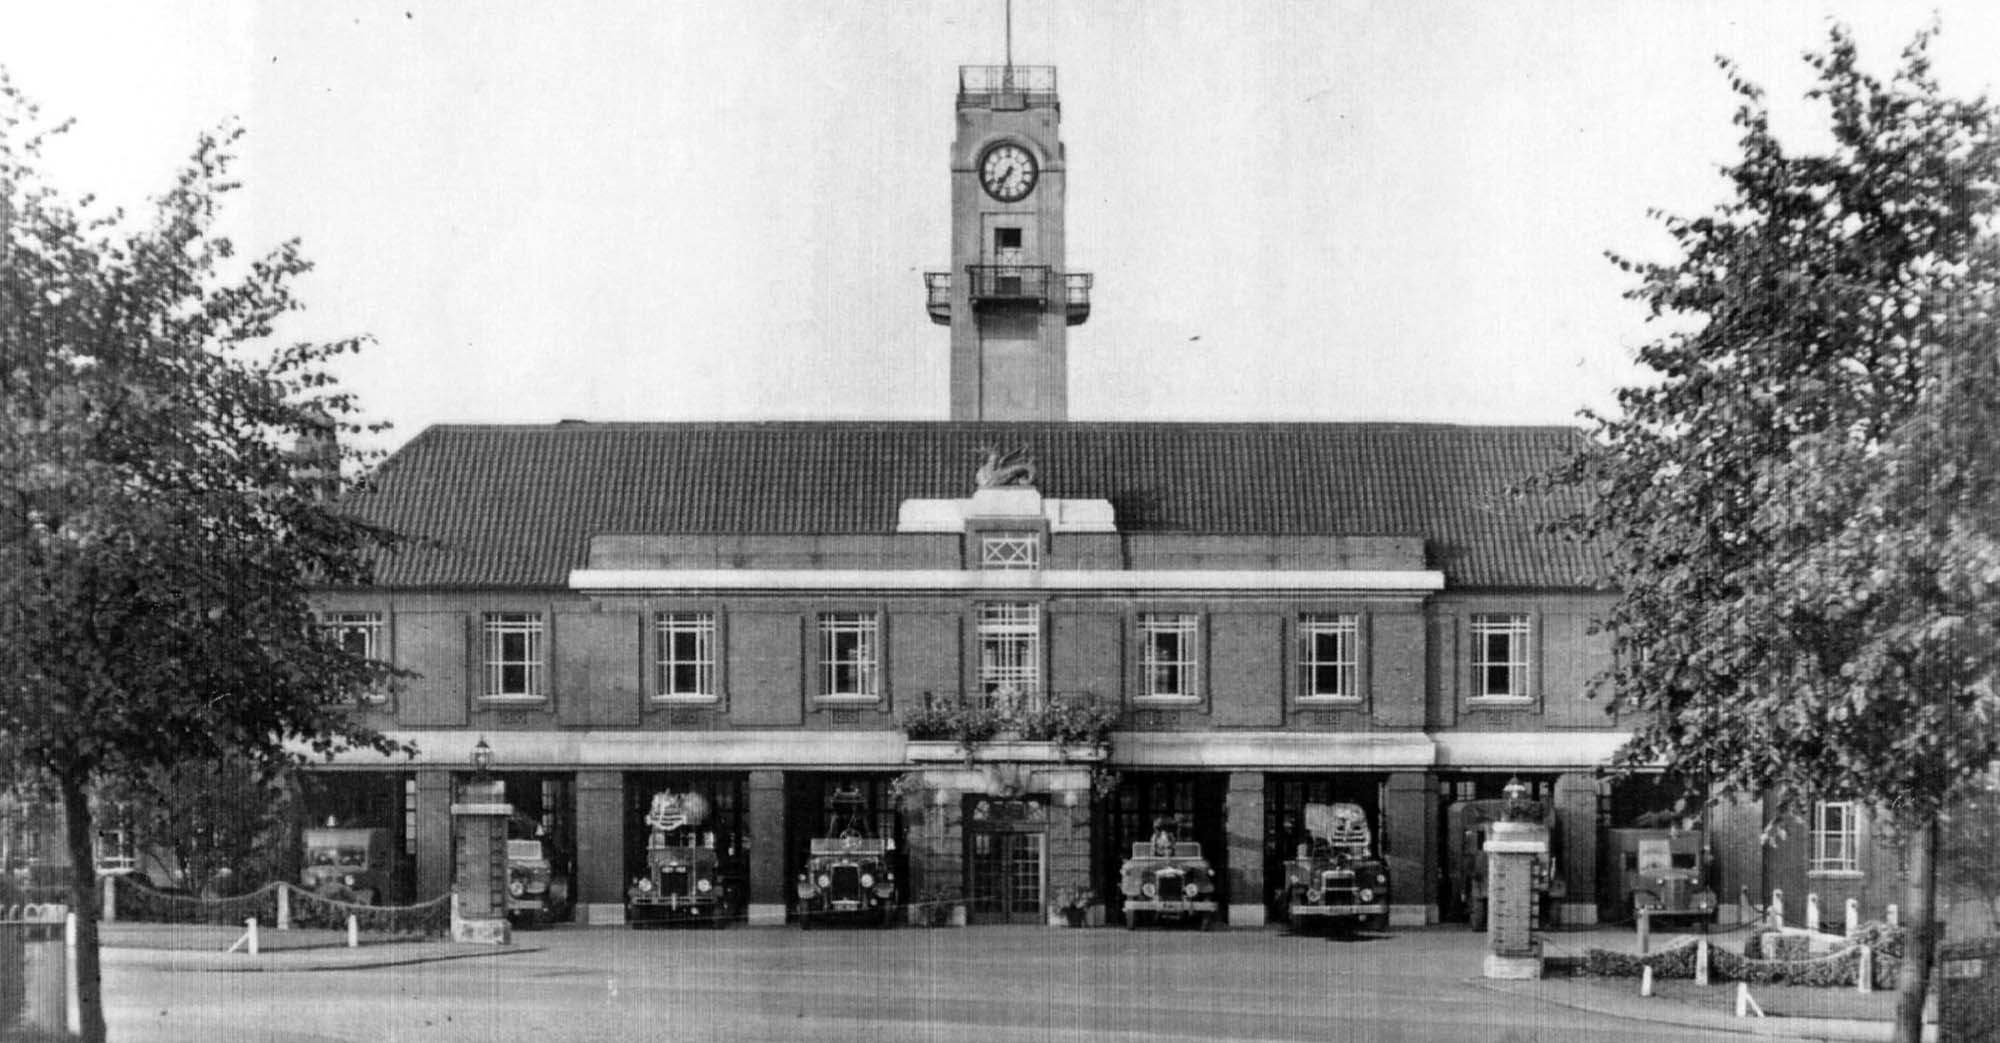 Central Station in the early 1940s with many open cab engines and special wartime vehicles in the far bays either side - Malc Tovey